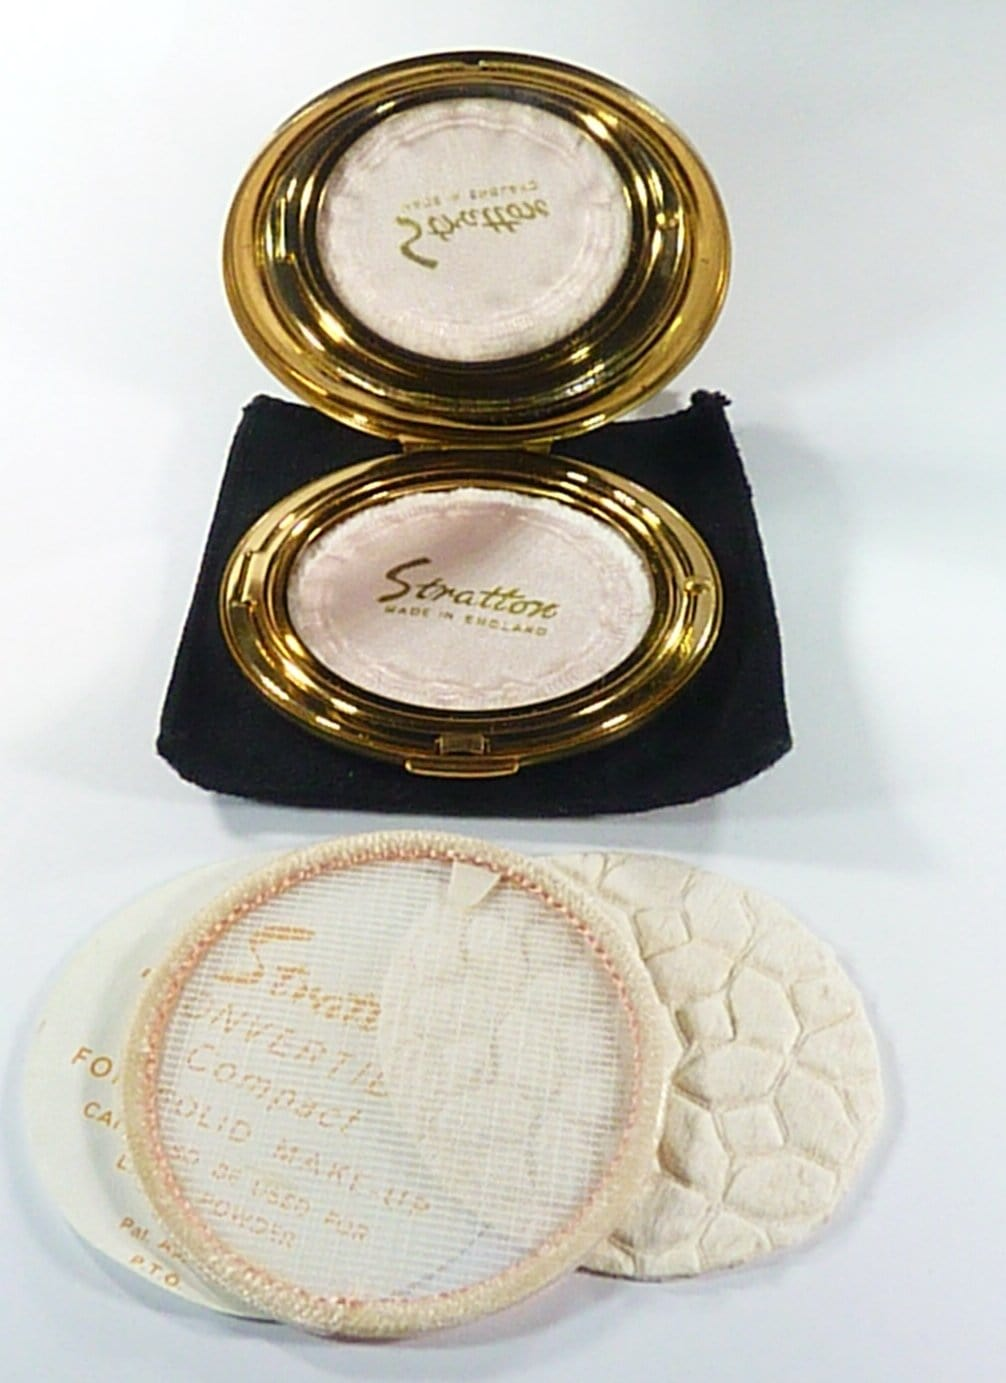 Unused Stratton Compact Mirror With Pouch Puff Sifter And Instructions